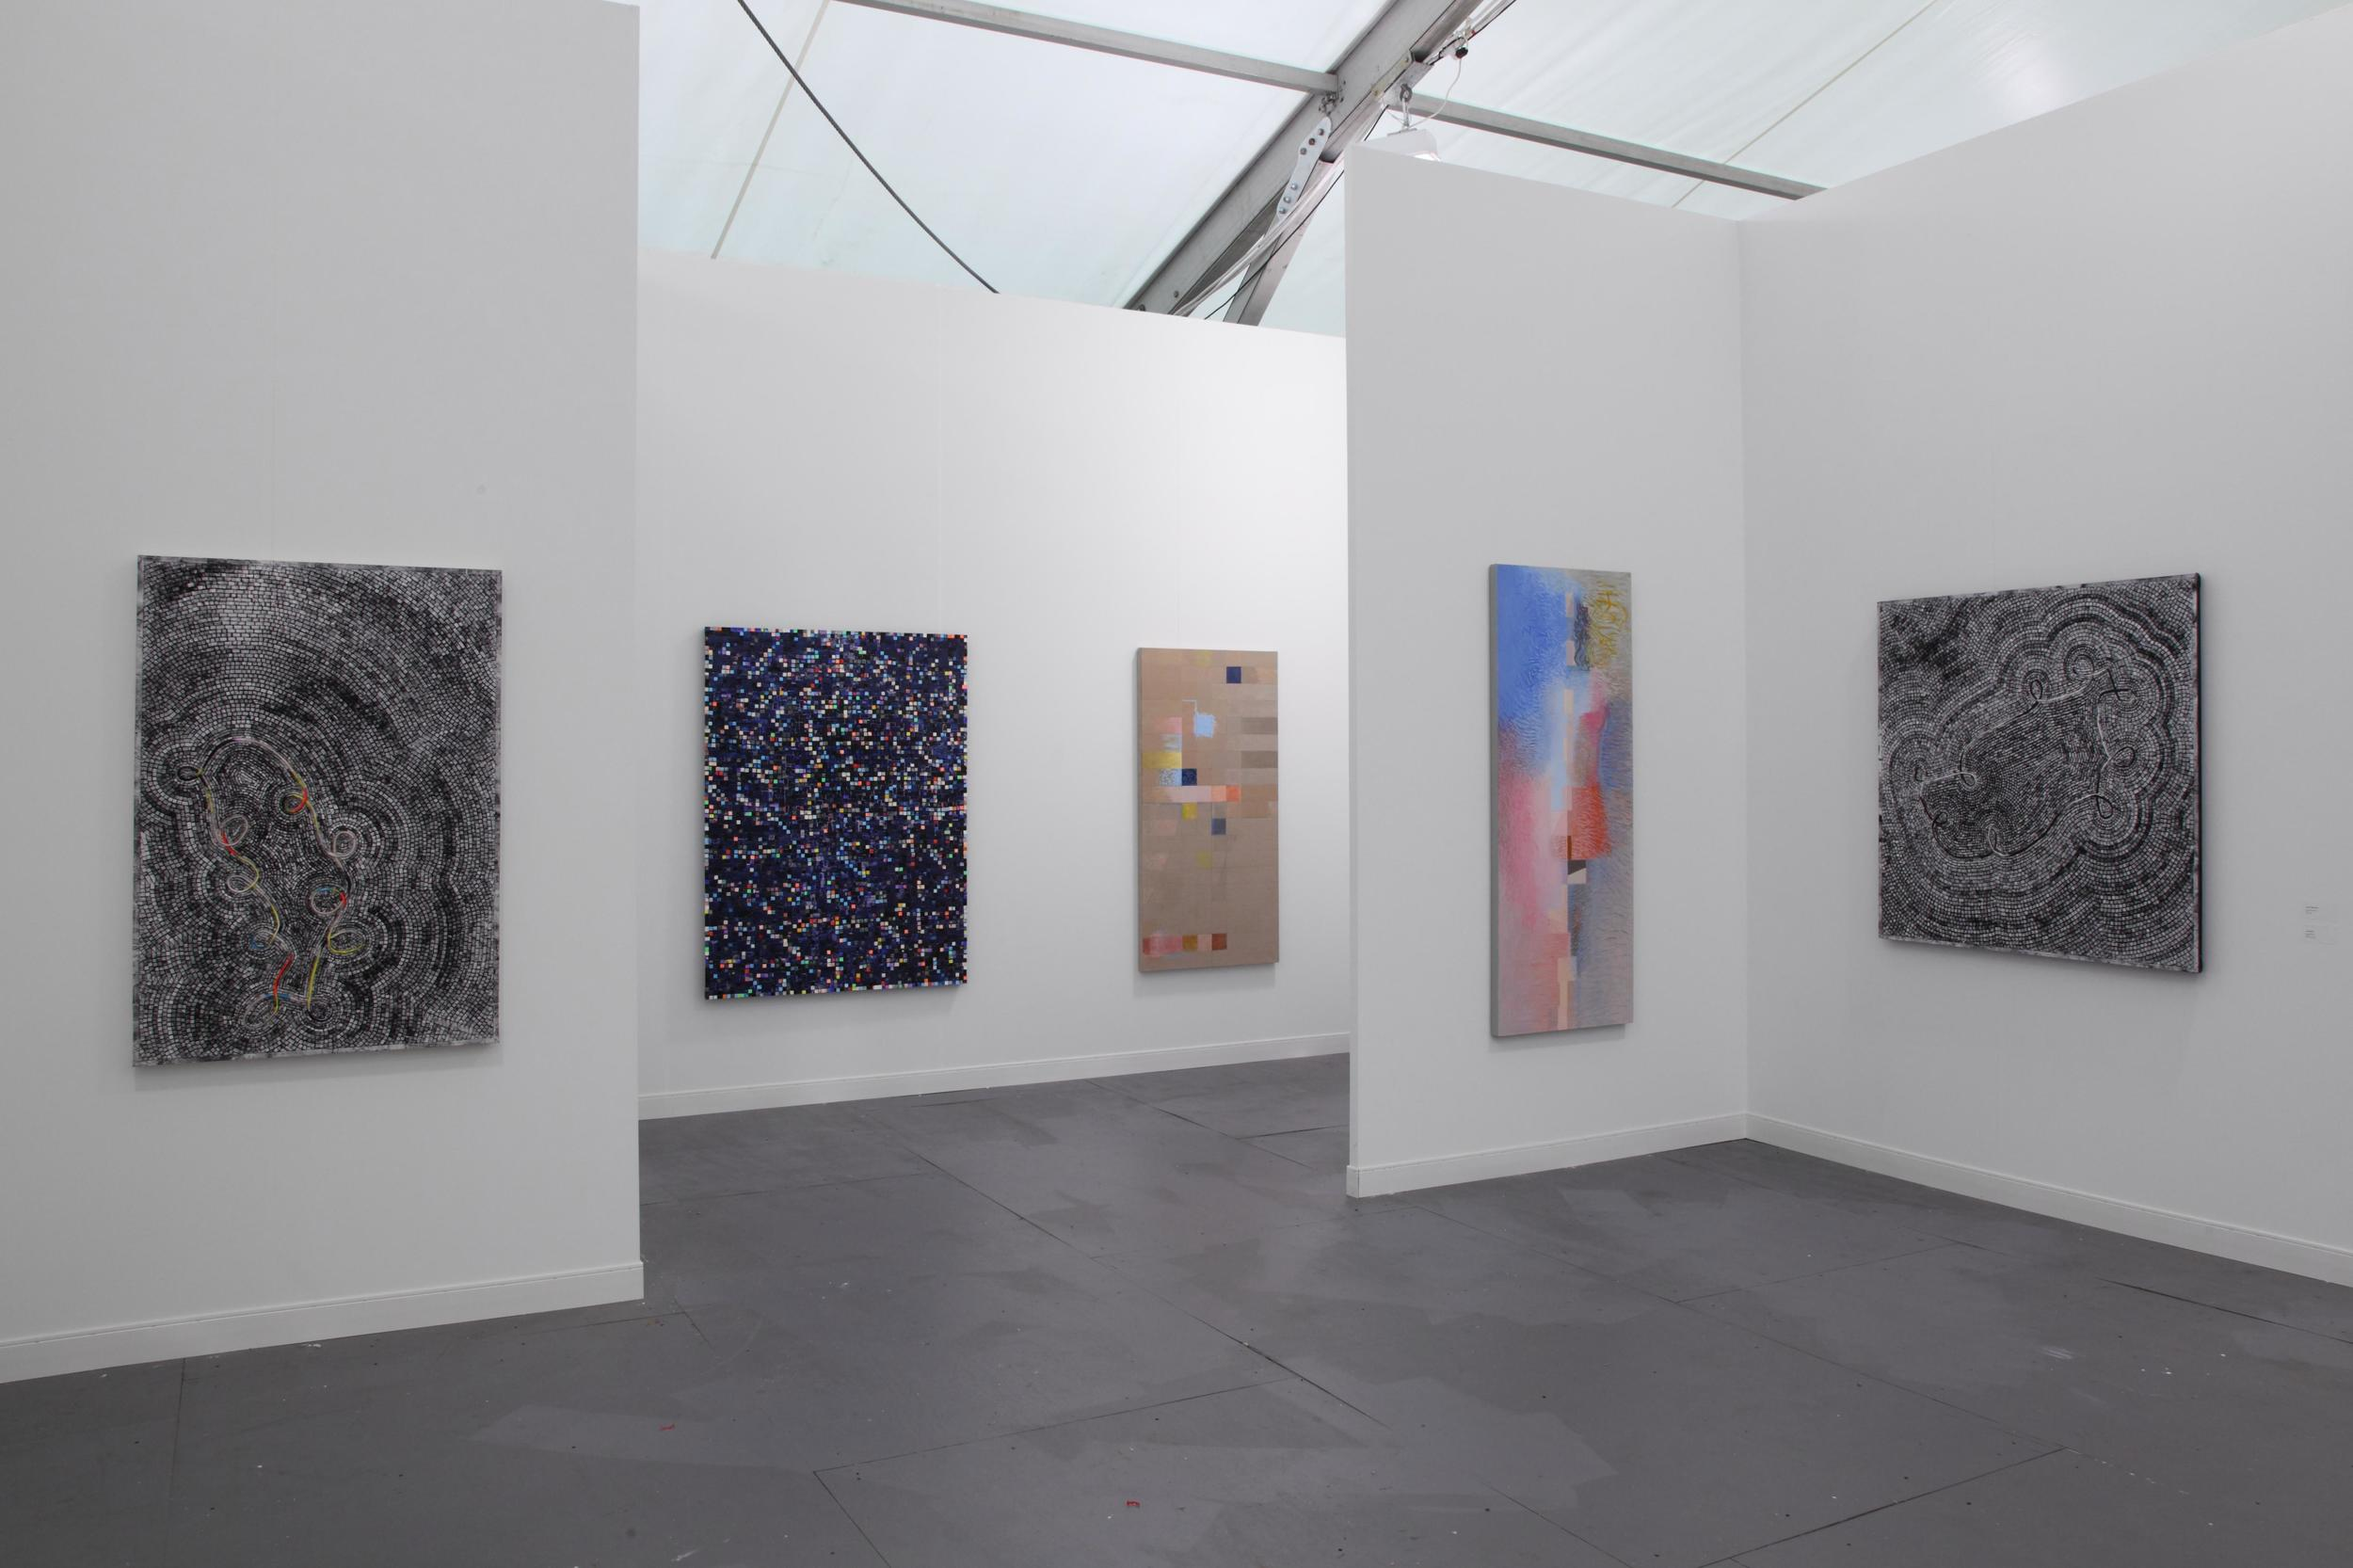 2012: Jeremy Gilbert-Rolfe and Jack Whitten at Frieze, New York